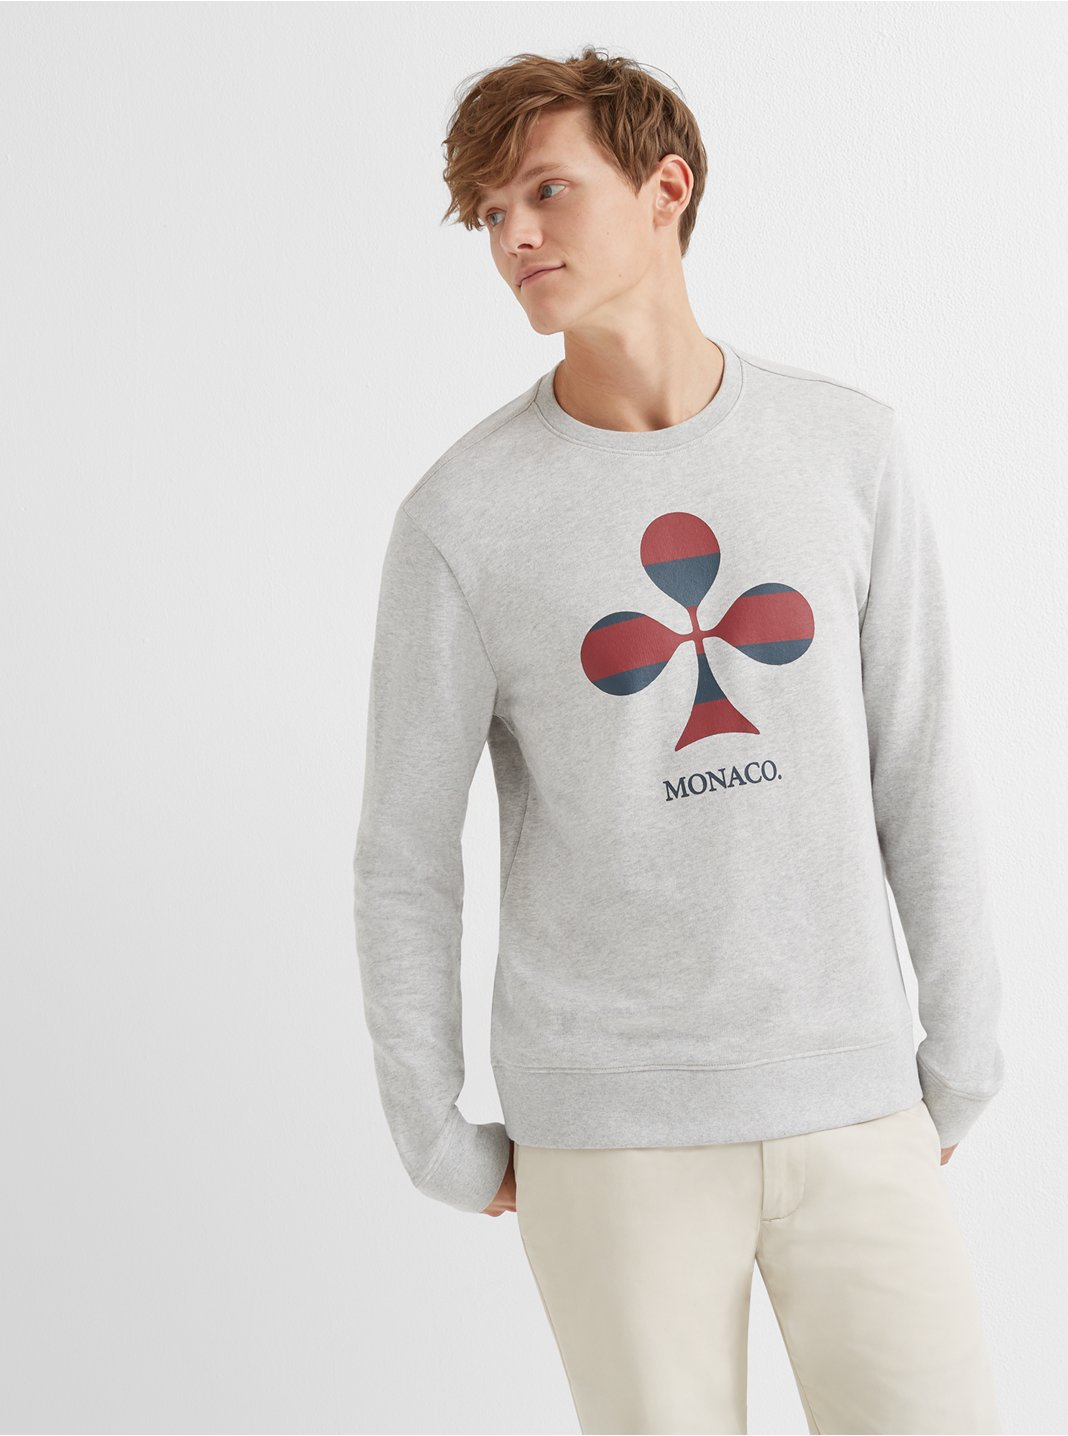 Club Graphic Sweatshirt